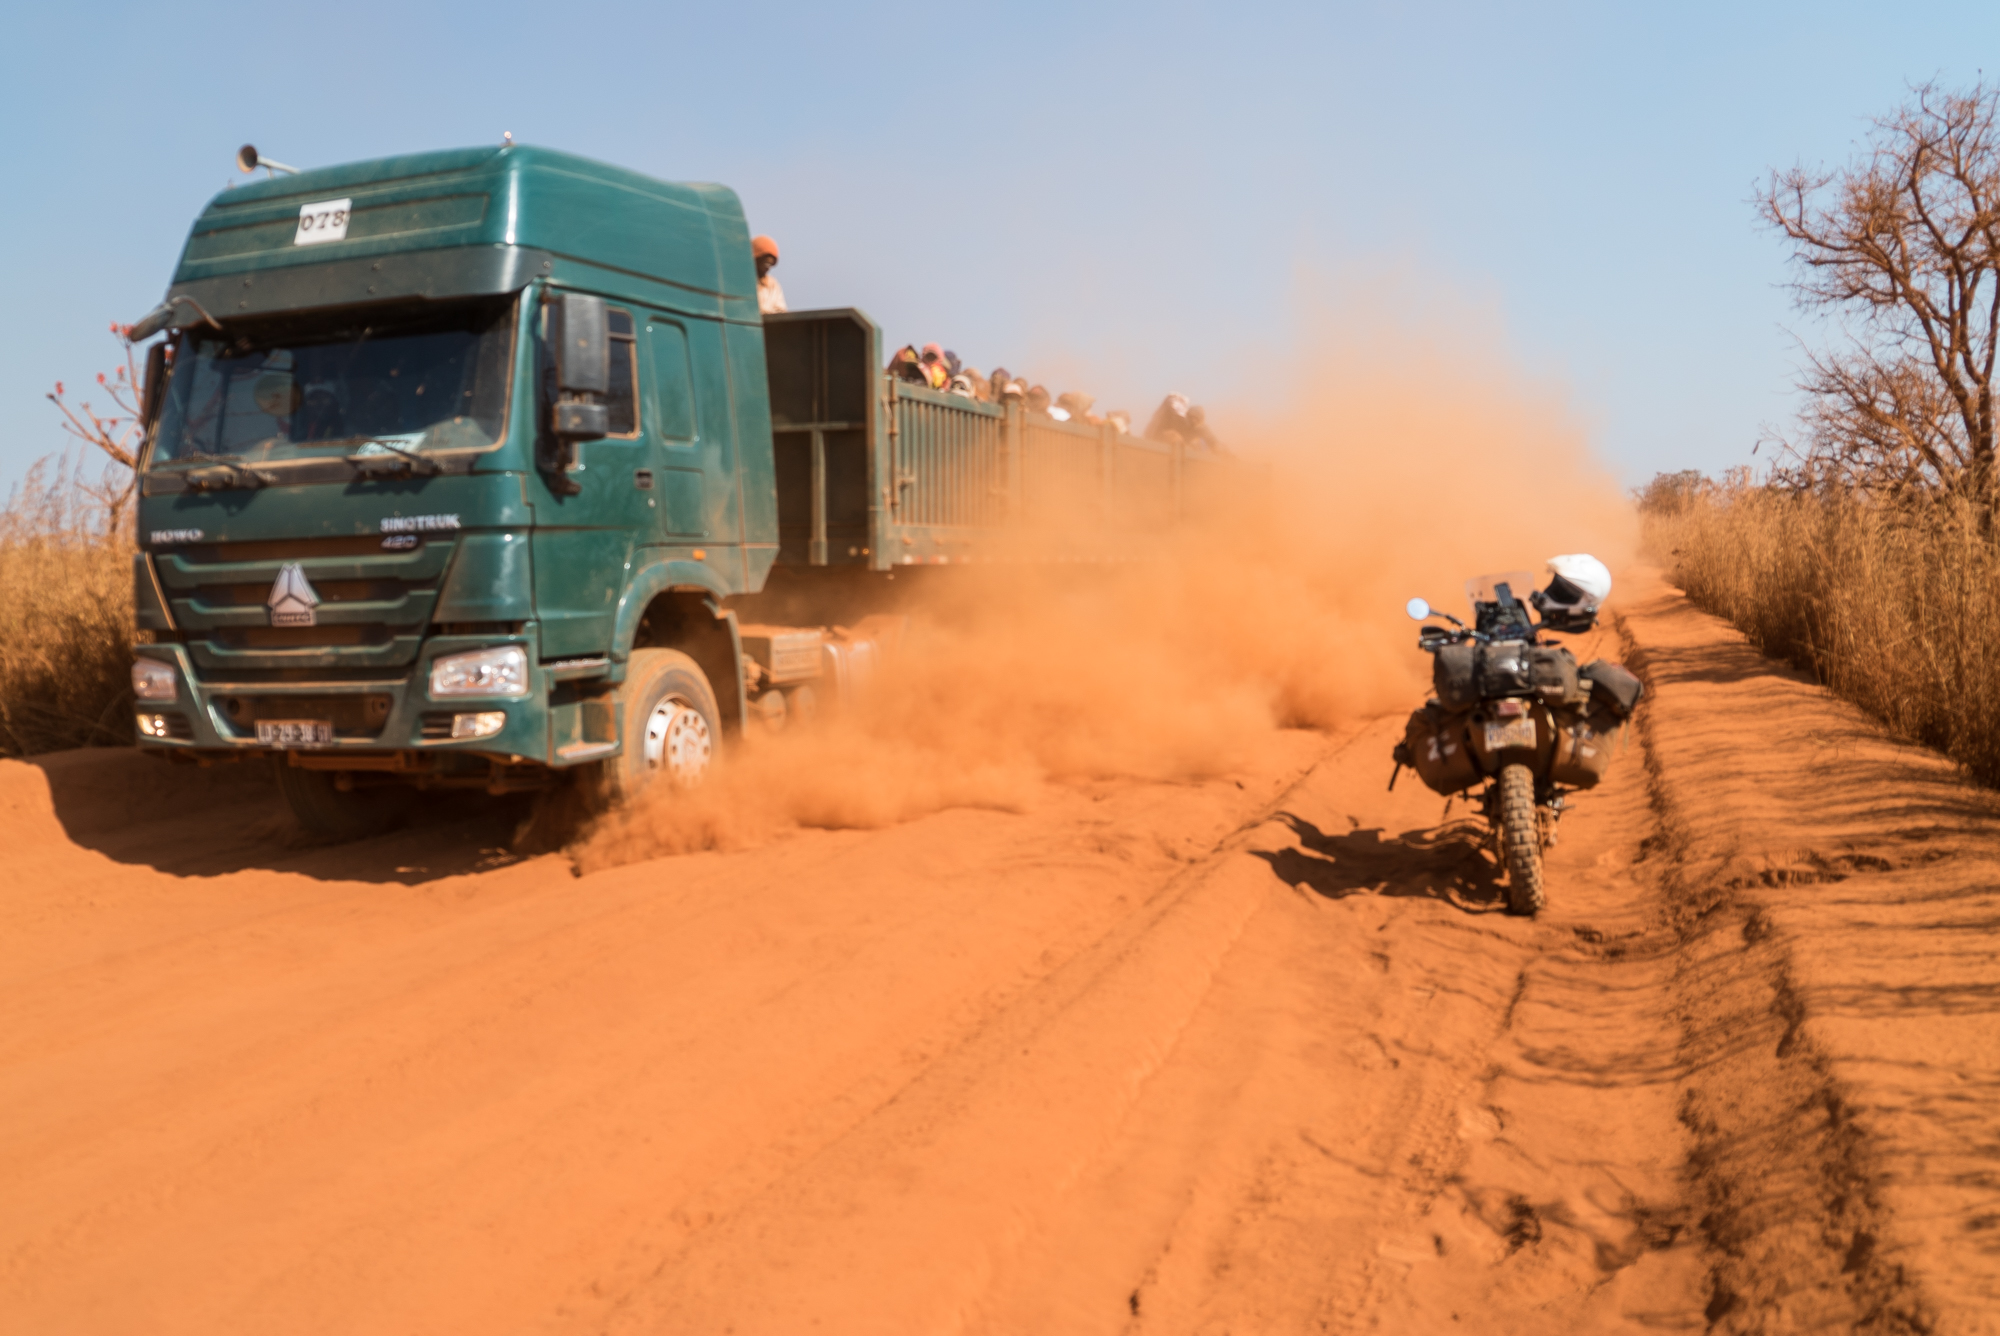 We encountered some intense, red, fine dust the consistency of flour one day that threatened to clog the air filters but it was all a good challenge. Definitely not easy to ride in and the trucks smoked us out big time.